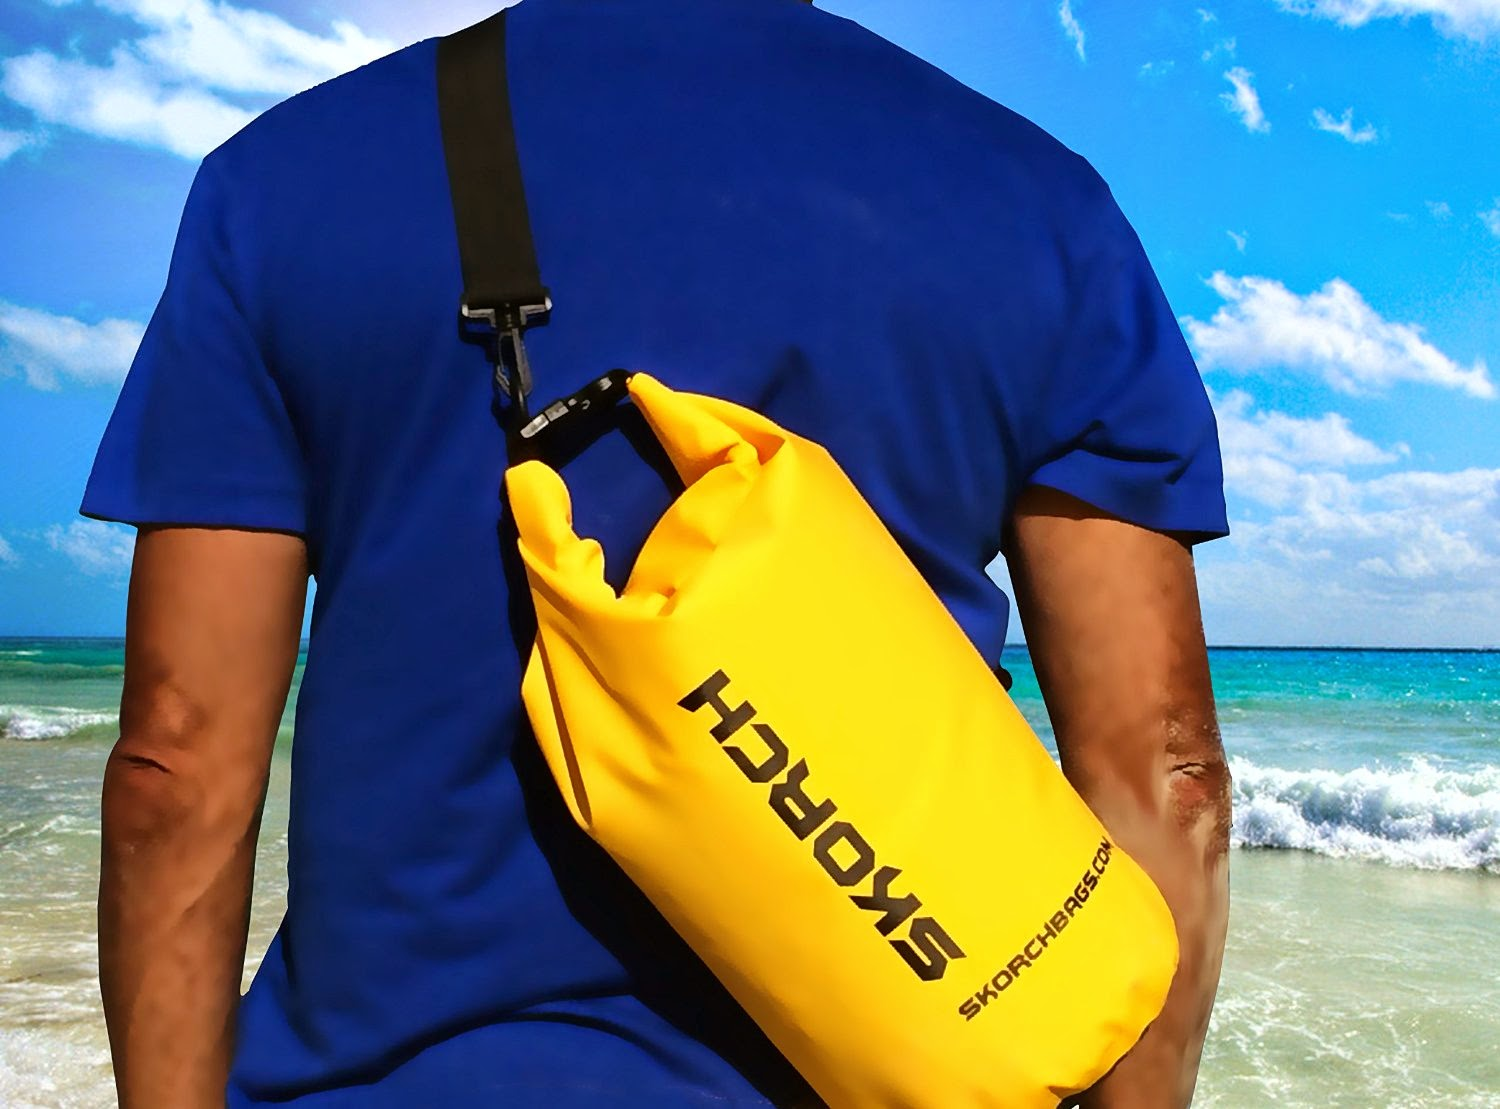 The Skorch Bright Yellow Dry bag